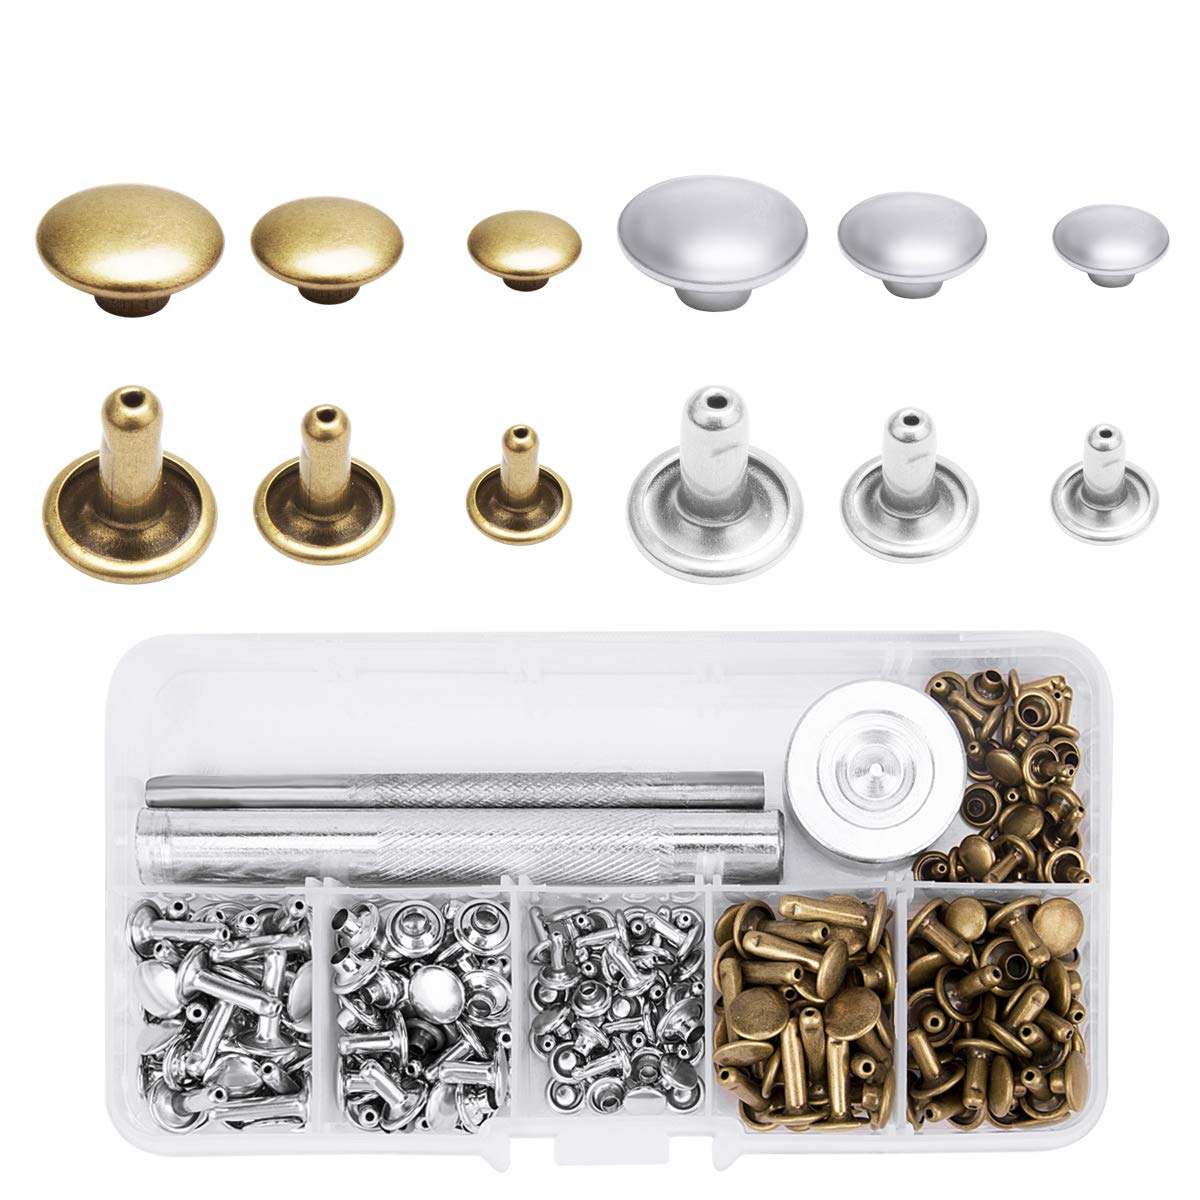 Aprince 123 Pieces Leather Rivets Copper Double Cap Rivet Buttons Metal Rivet Snap with Setting Tool Kit and Storage Box for DIY Leather Craft Repair Clothes Bag Shoes Hat 3 Sizes (Silver and Bronze)